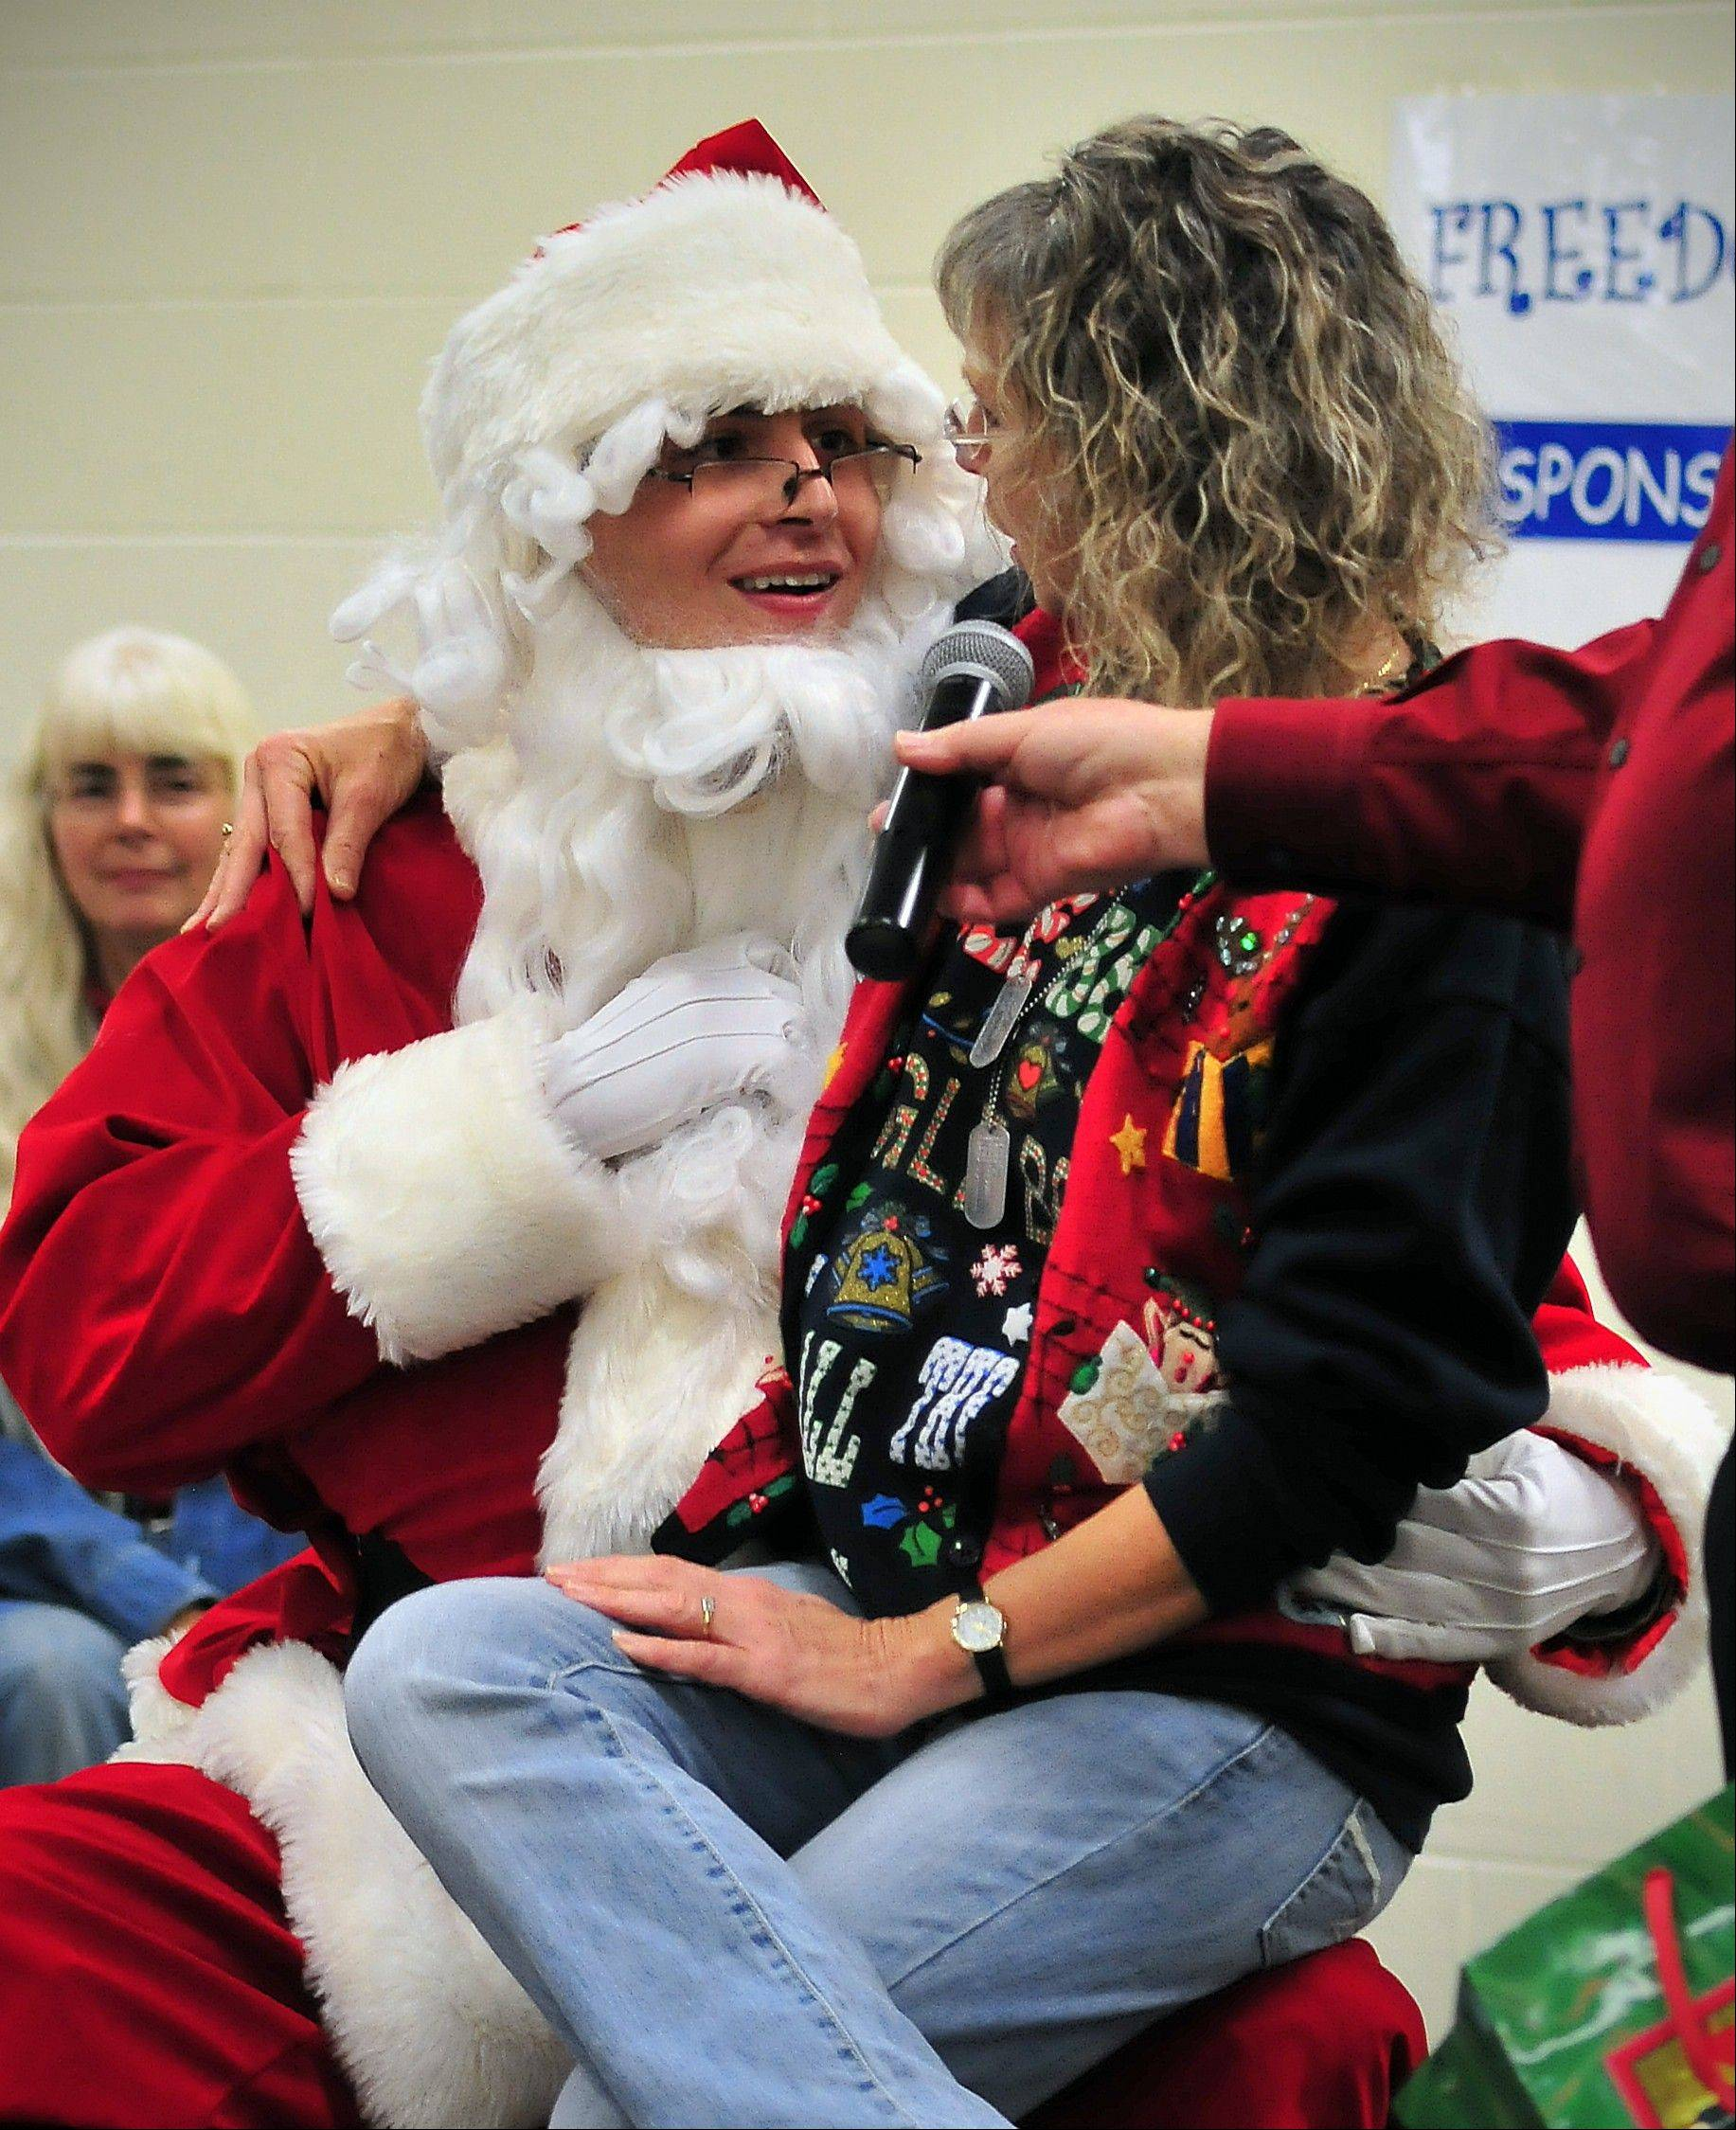 Army Spc. Ethan Harris, masquerading as Santa Claus, gives his mother, Kim Harris, a high school math teacher, quite the Christmas present Friday in Brushy Prairie, Ind., by coming home early from a tour in Afghanistan.